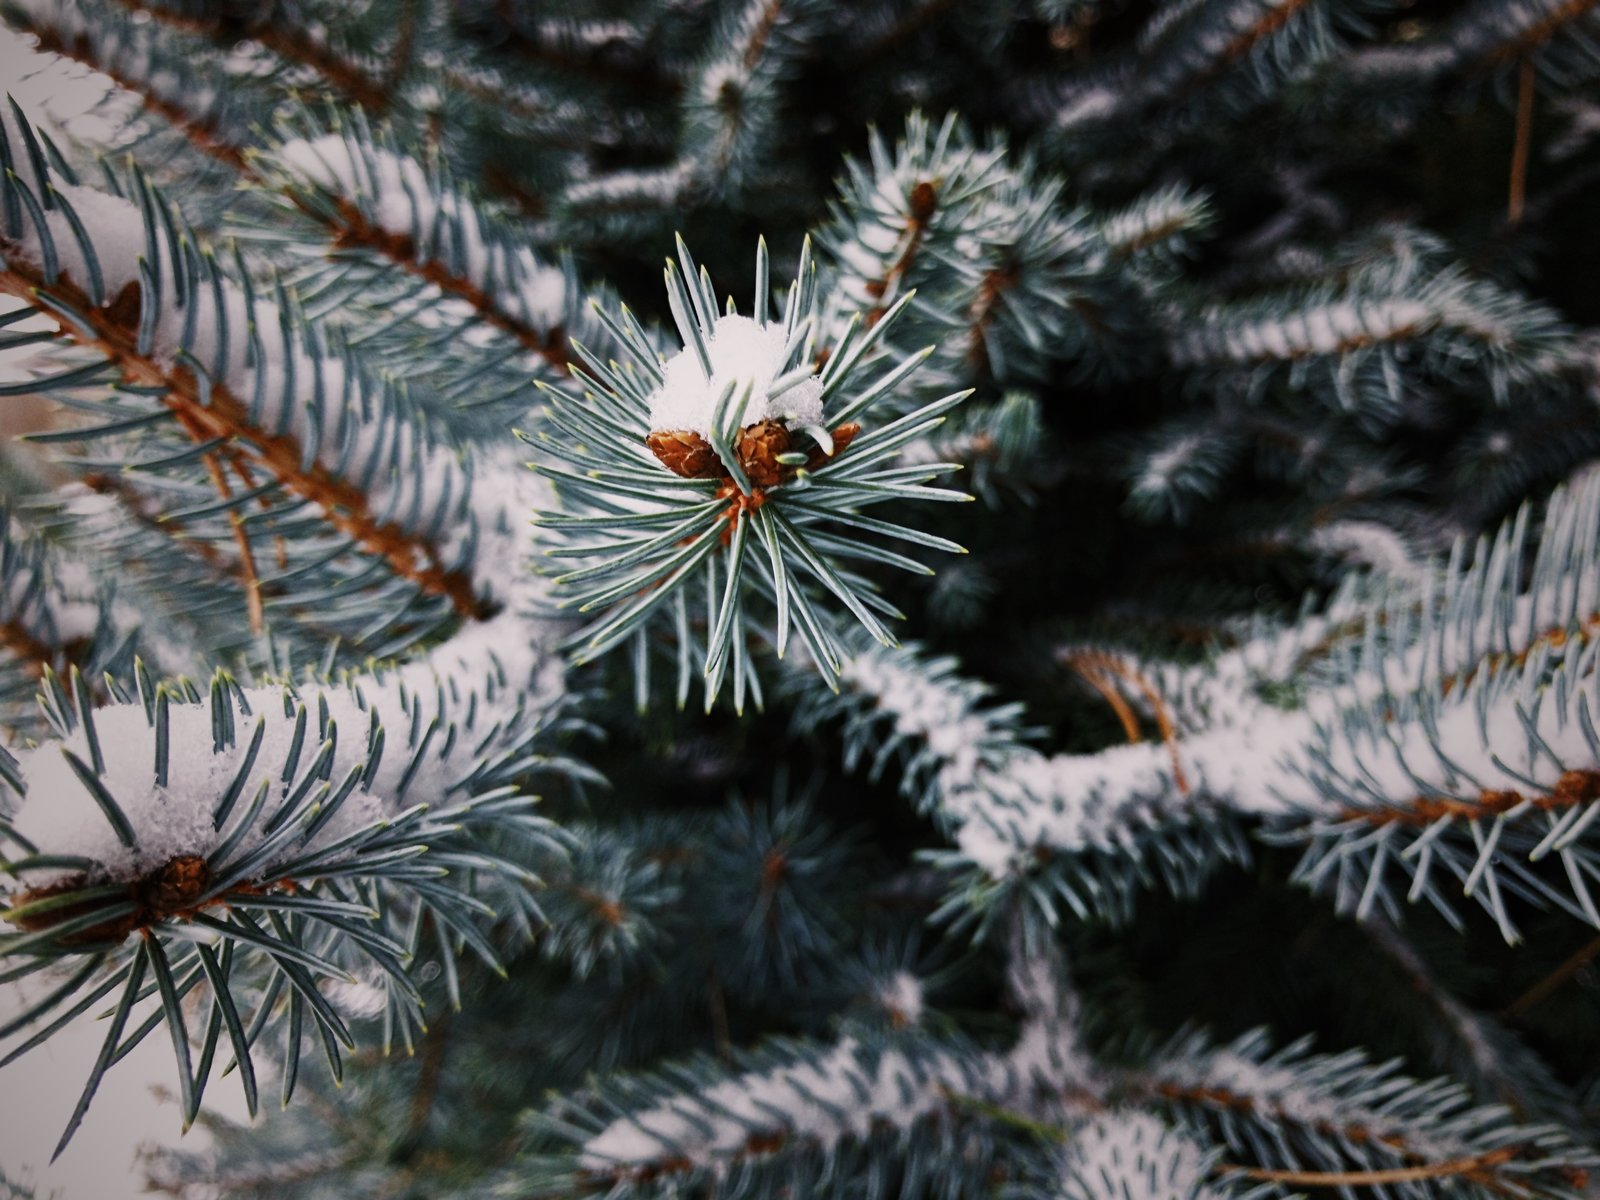 Snow rests gently on evergreen needles on a cold, winter day.